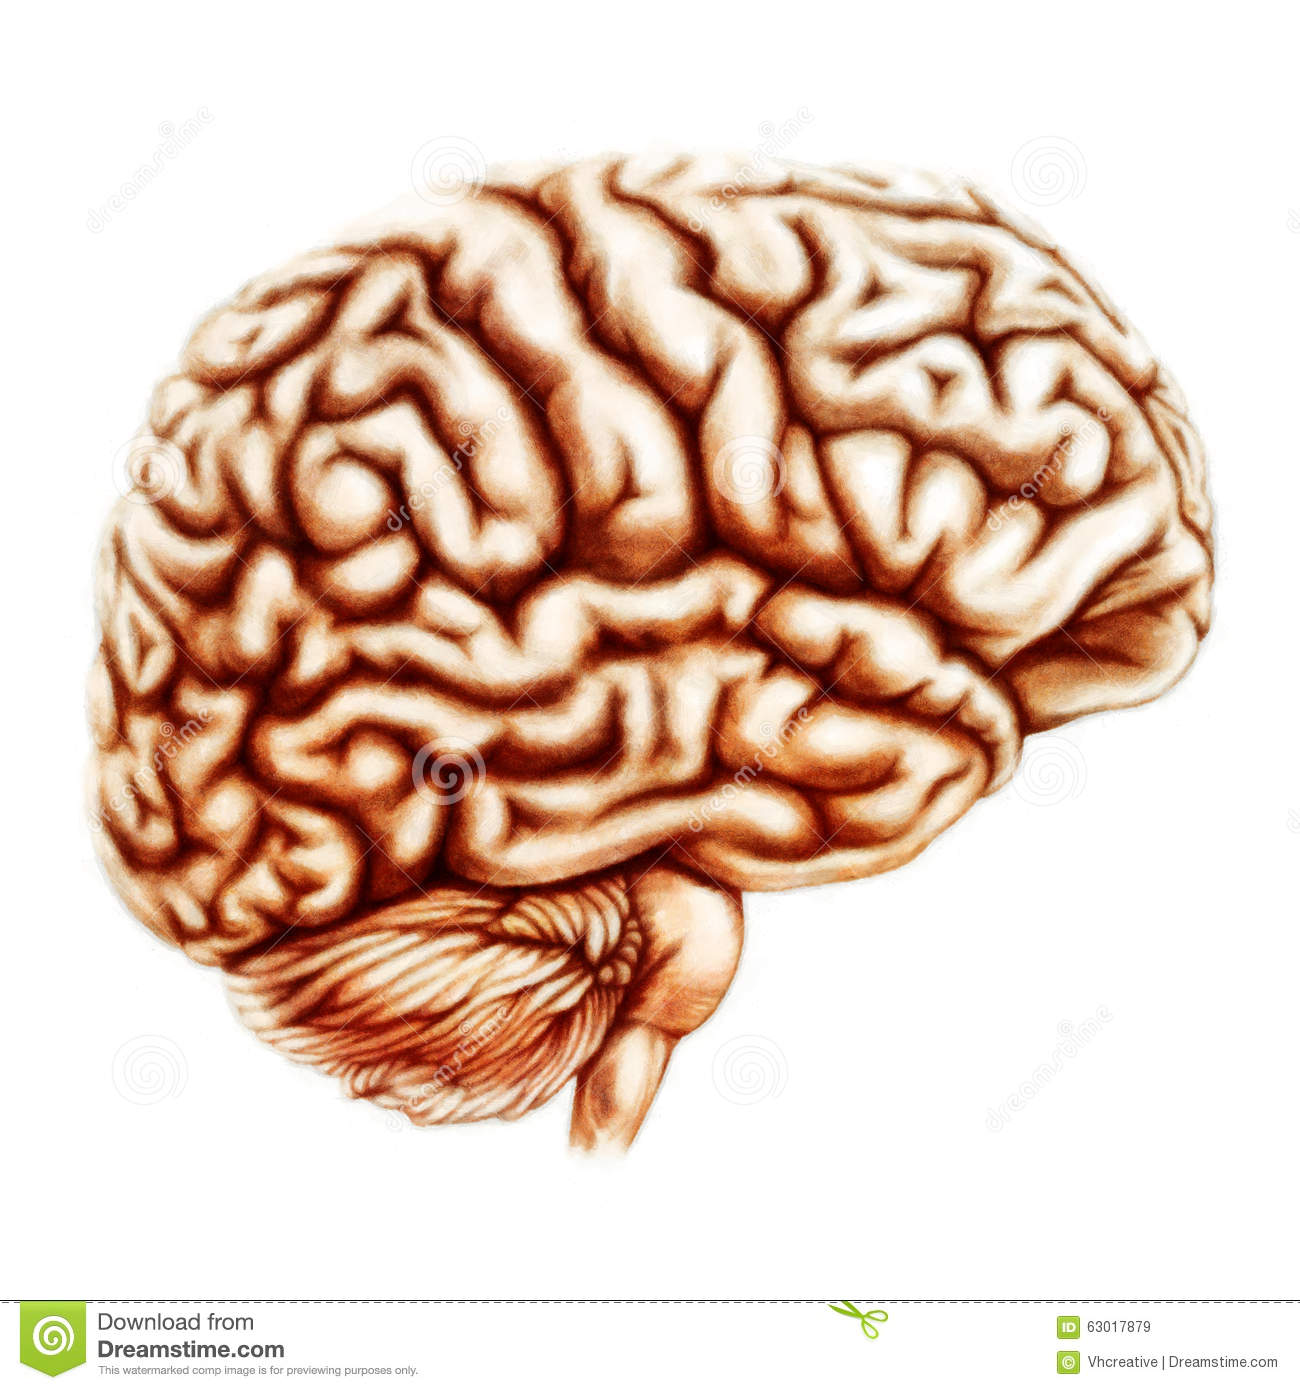 Human Brain Anatomy Illustration Stock Illustration - Illustration ...